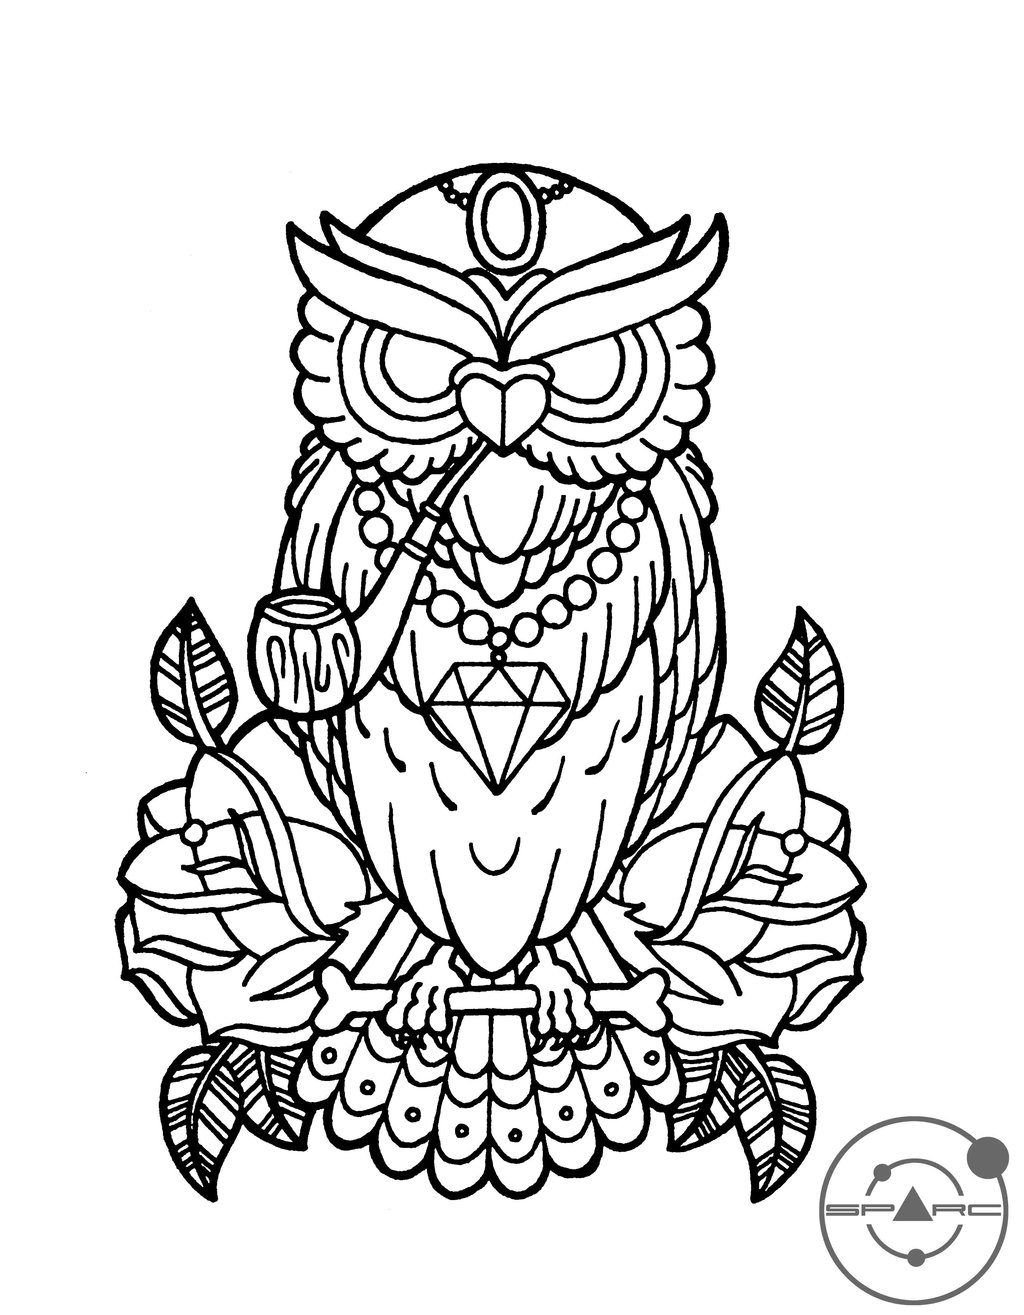 Owl Skull Drawing at GetDrawings.com | Free for personal use Owl ...